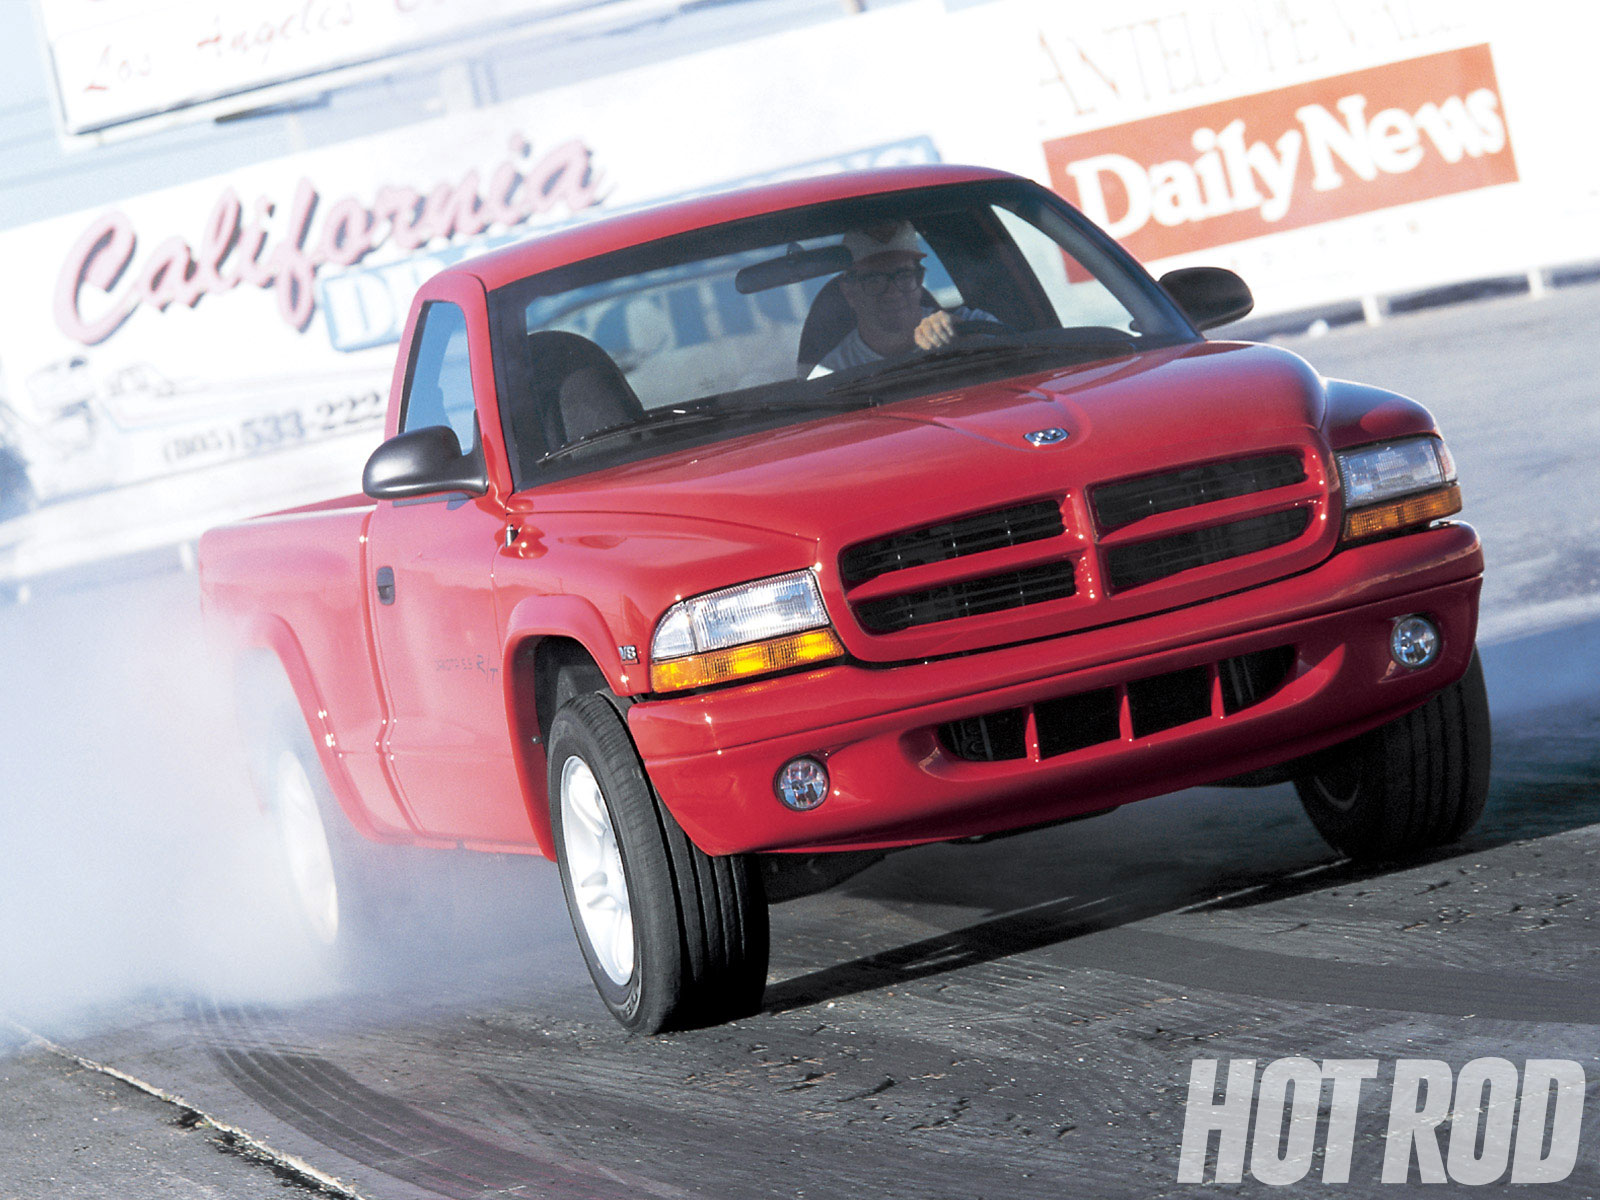 hight resolution of hrdp 9808 01 o 1998 dodge dakota rt burning rubber